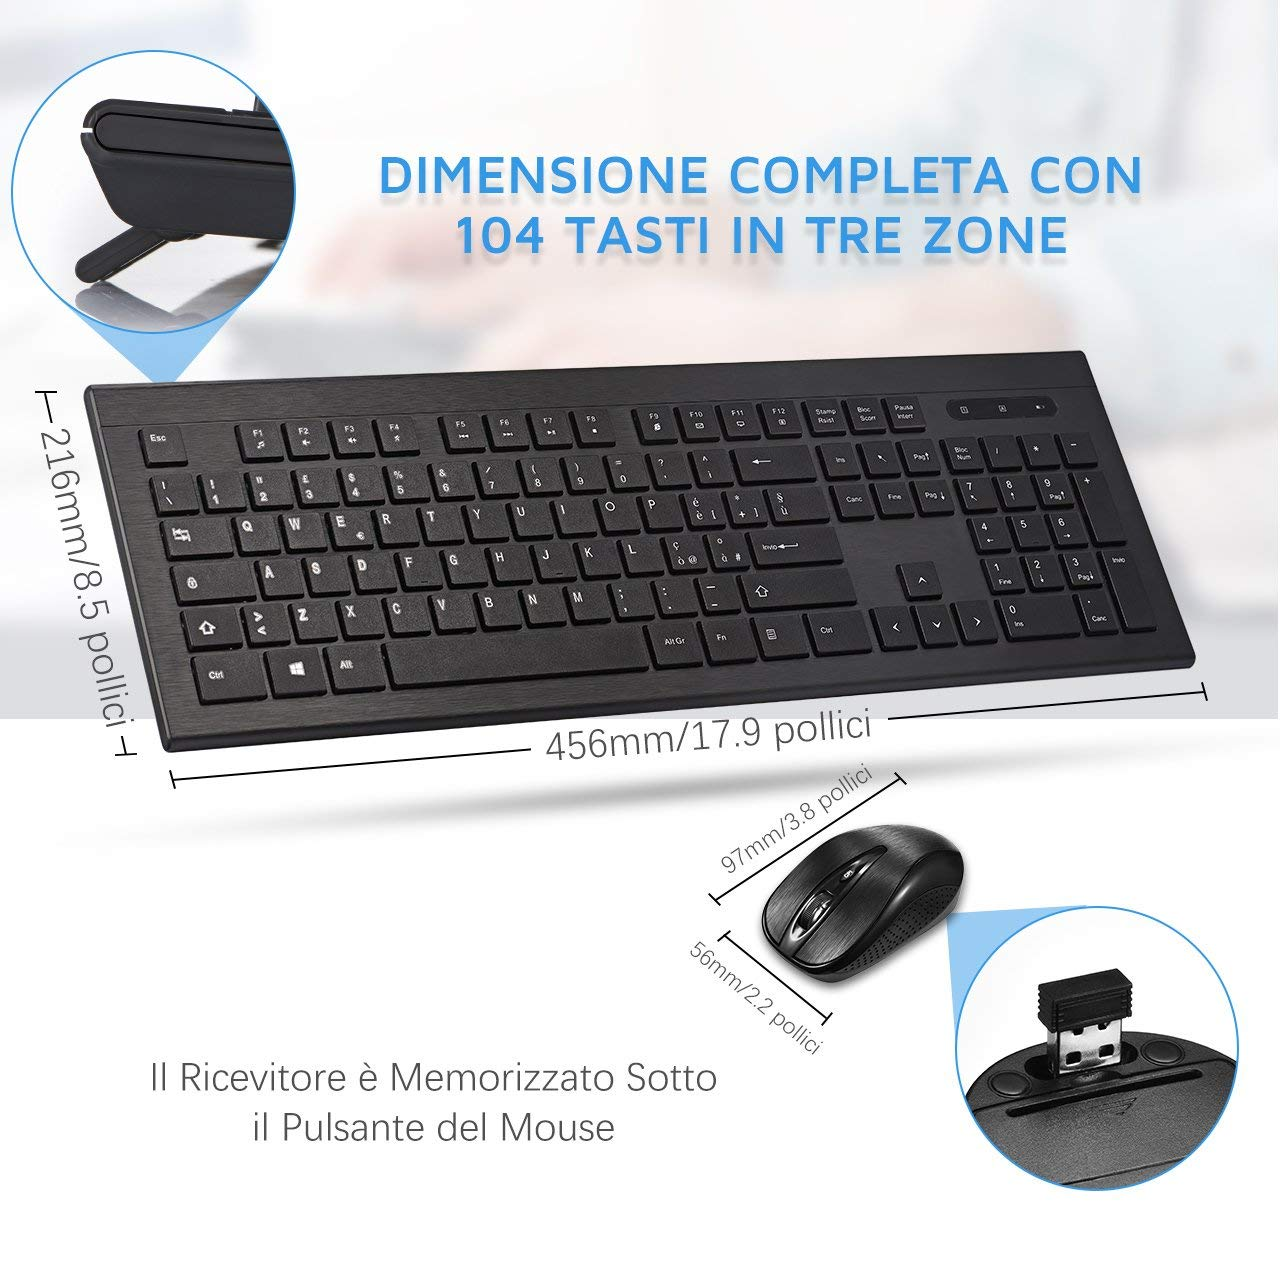 sconto su mouse e tastiera wireless di buona qualit solo oggi a 19 99 euro. Black Bedroom Furniture Sets. Home Design Ideas